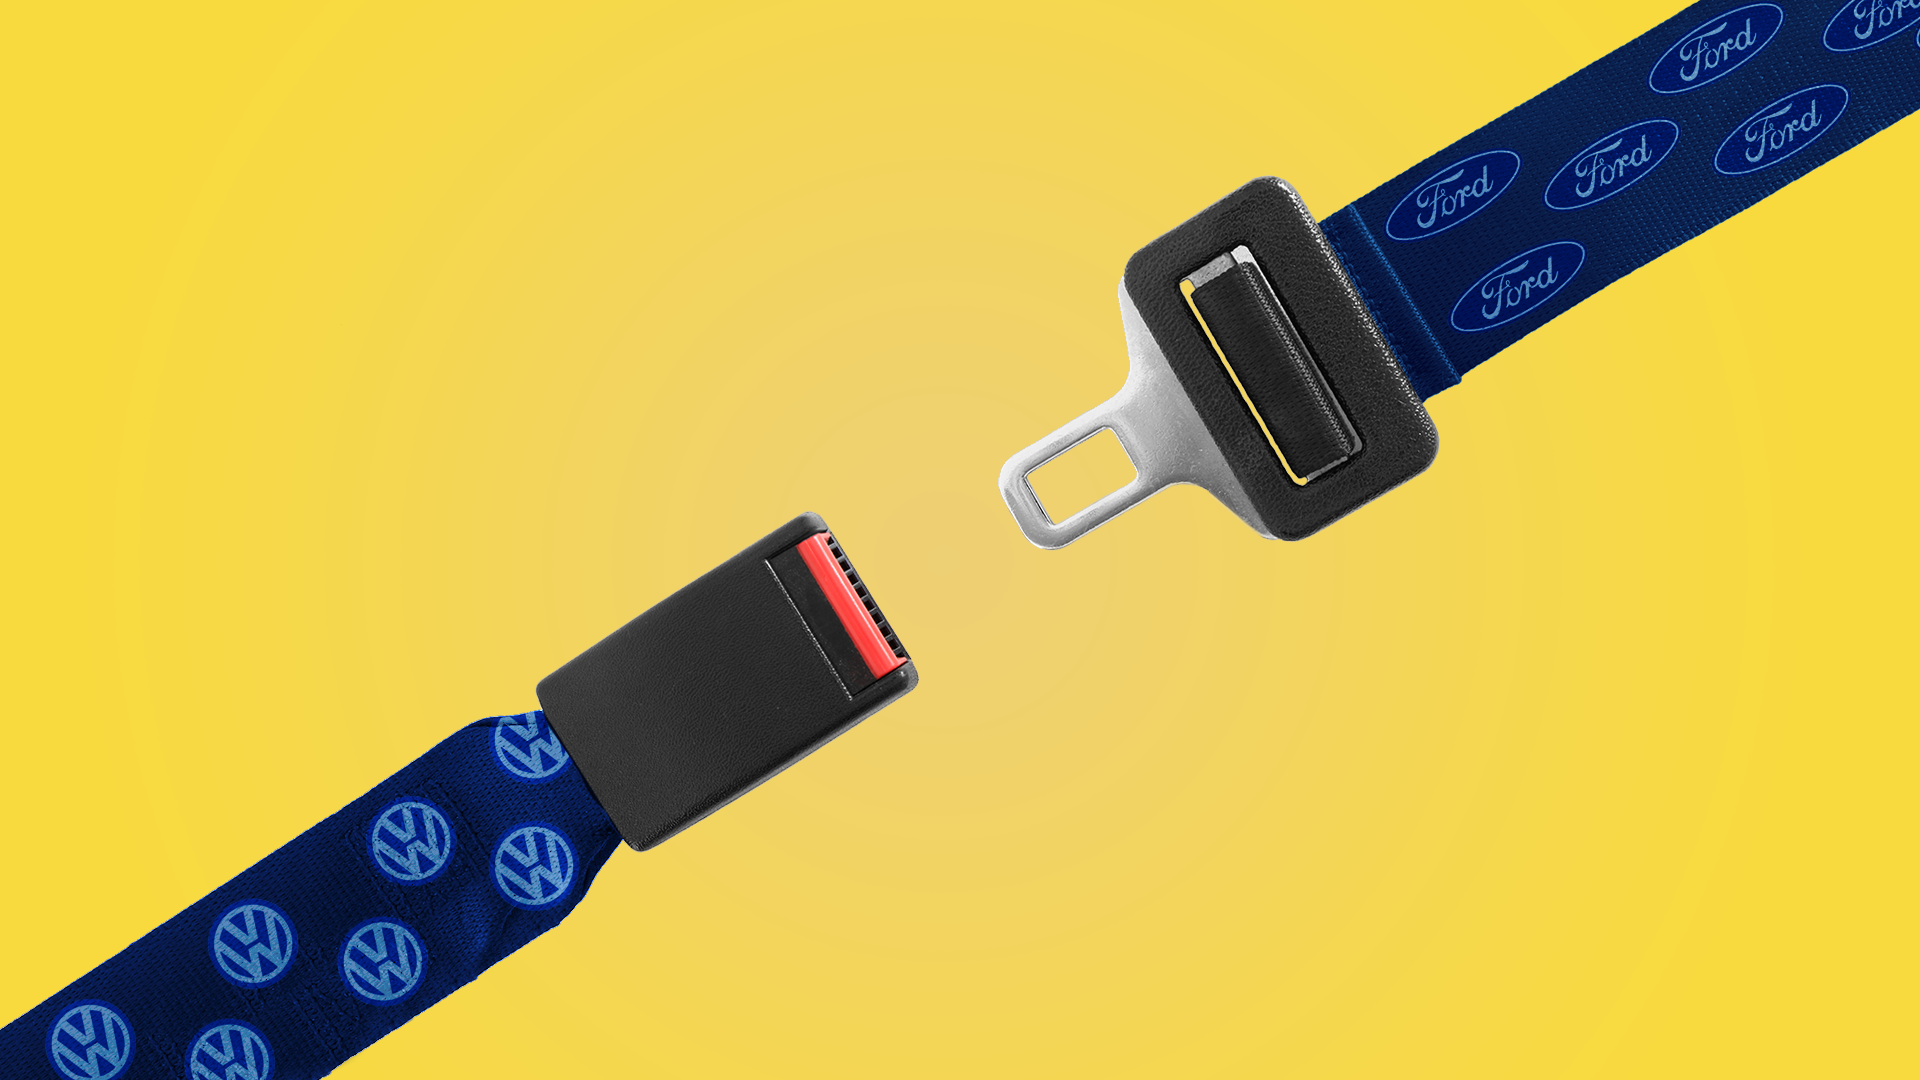 illustration of a seatbelt with embroidered Ford and Volkswagen logos